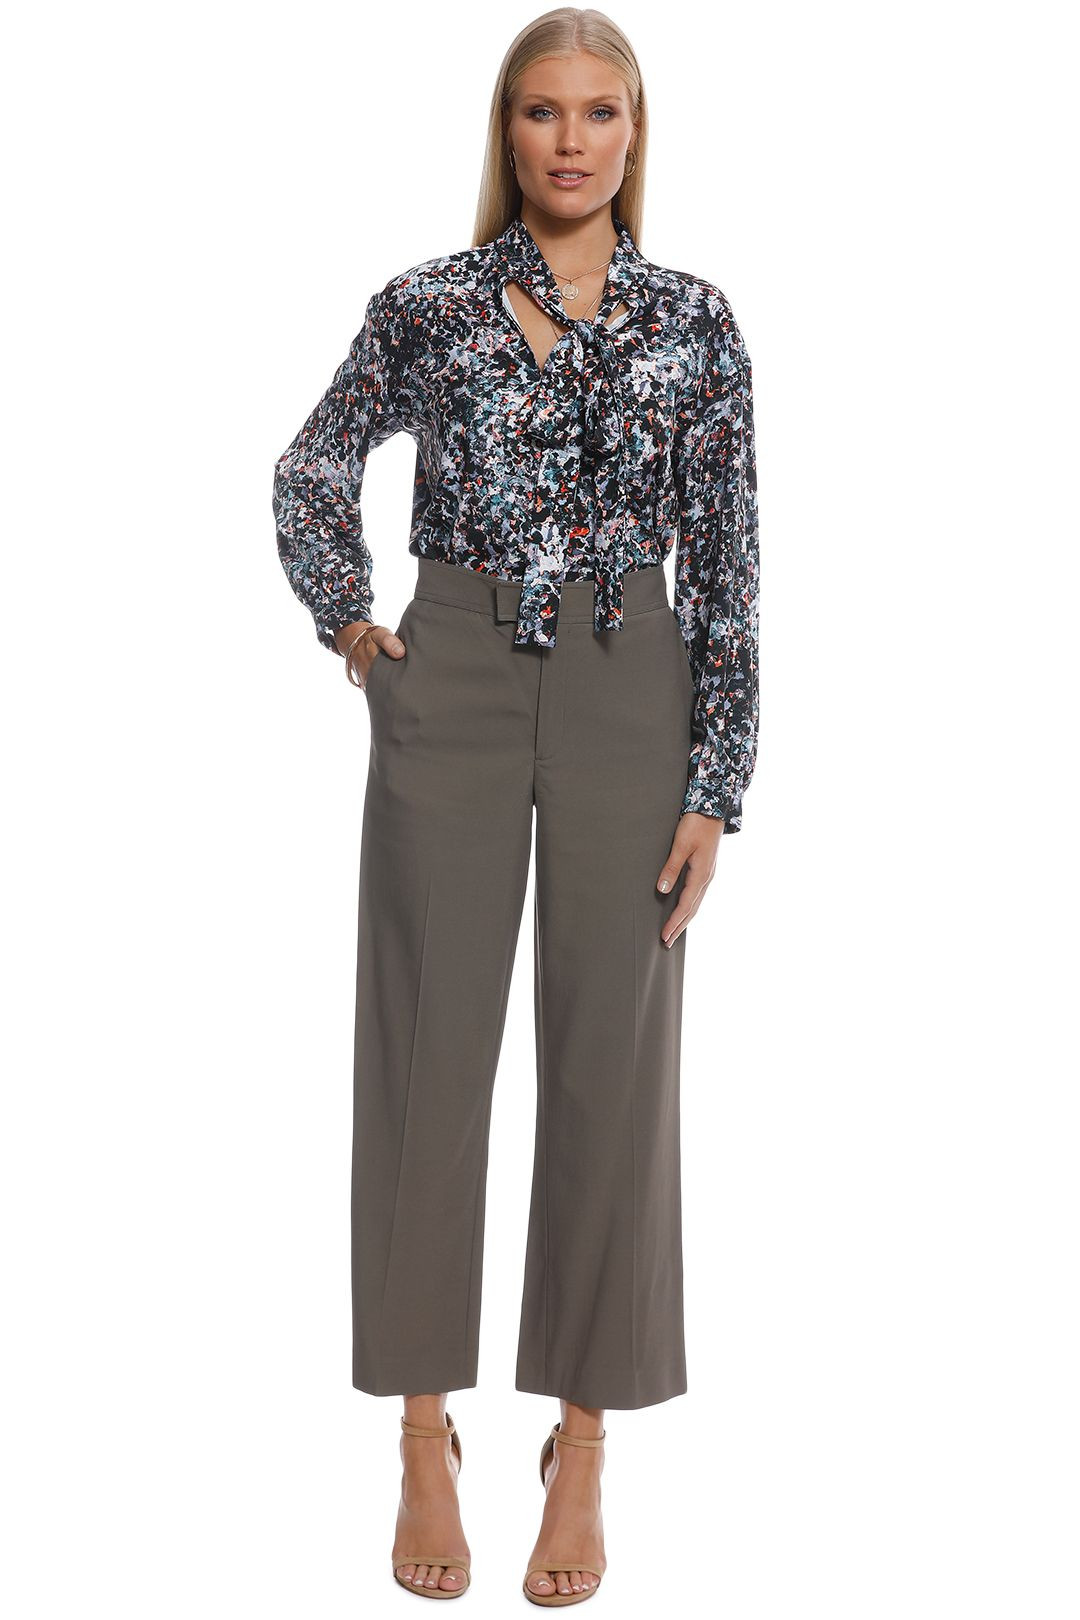 Scanlan Theodore - Stormy Print Blouse -Multi - Front